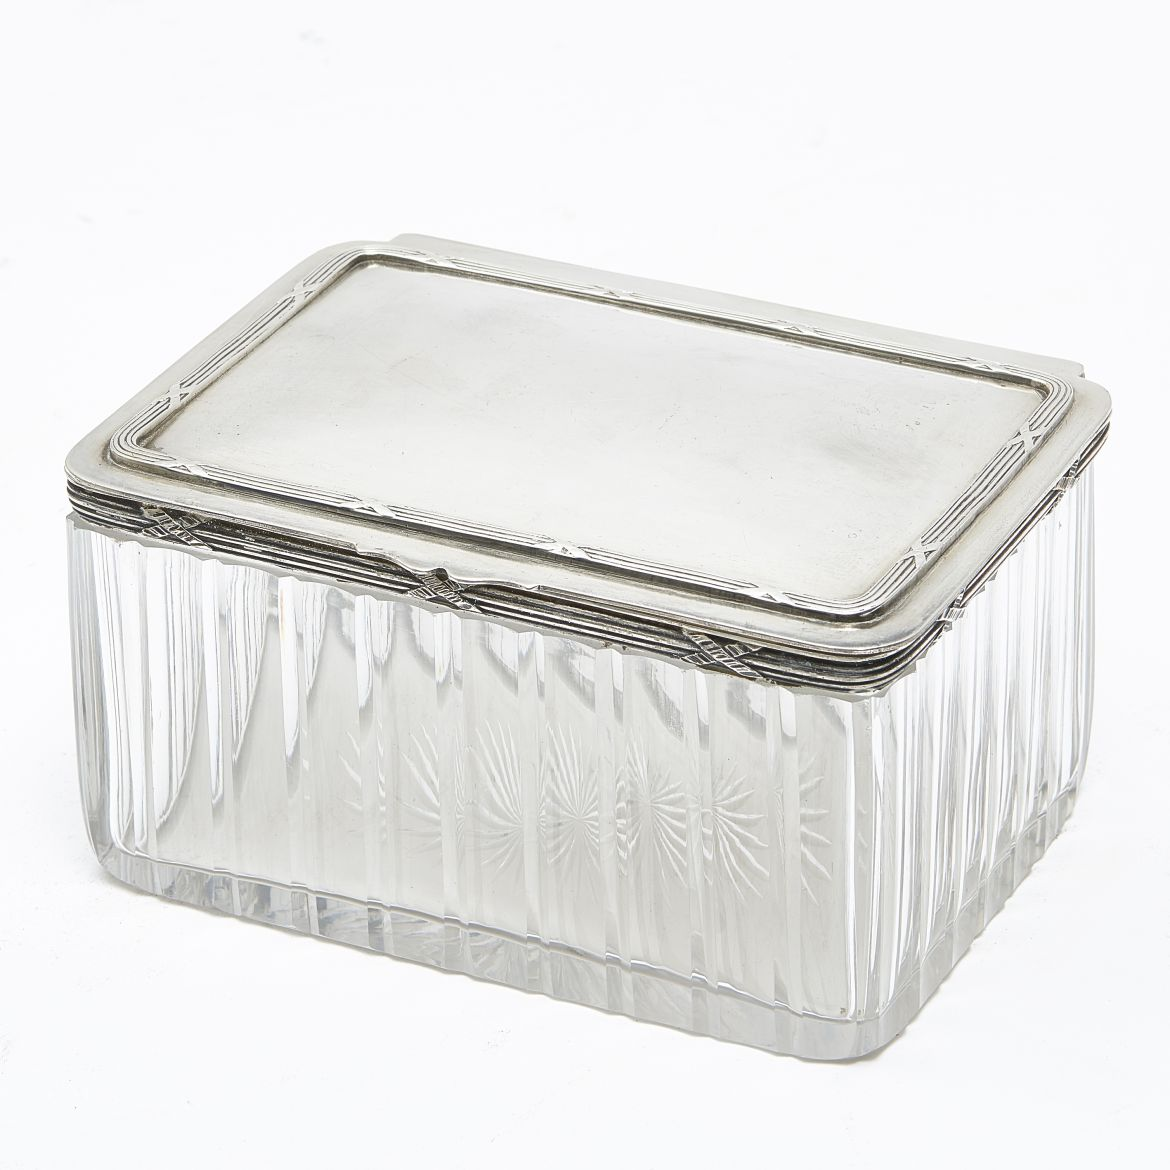 Cut Crystal And Silver Box